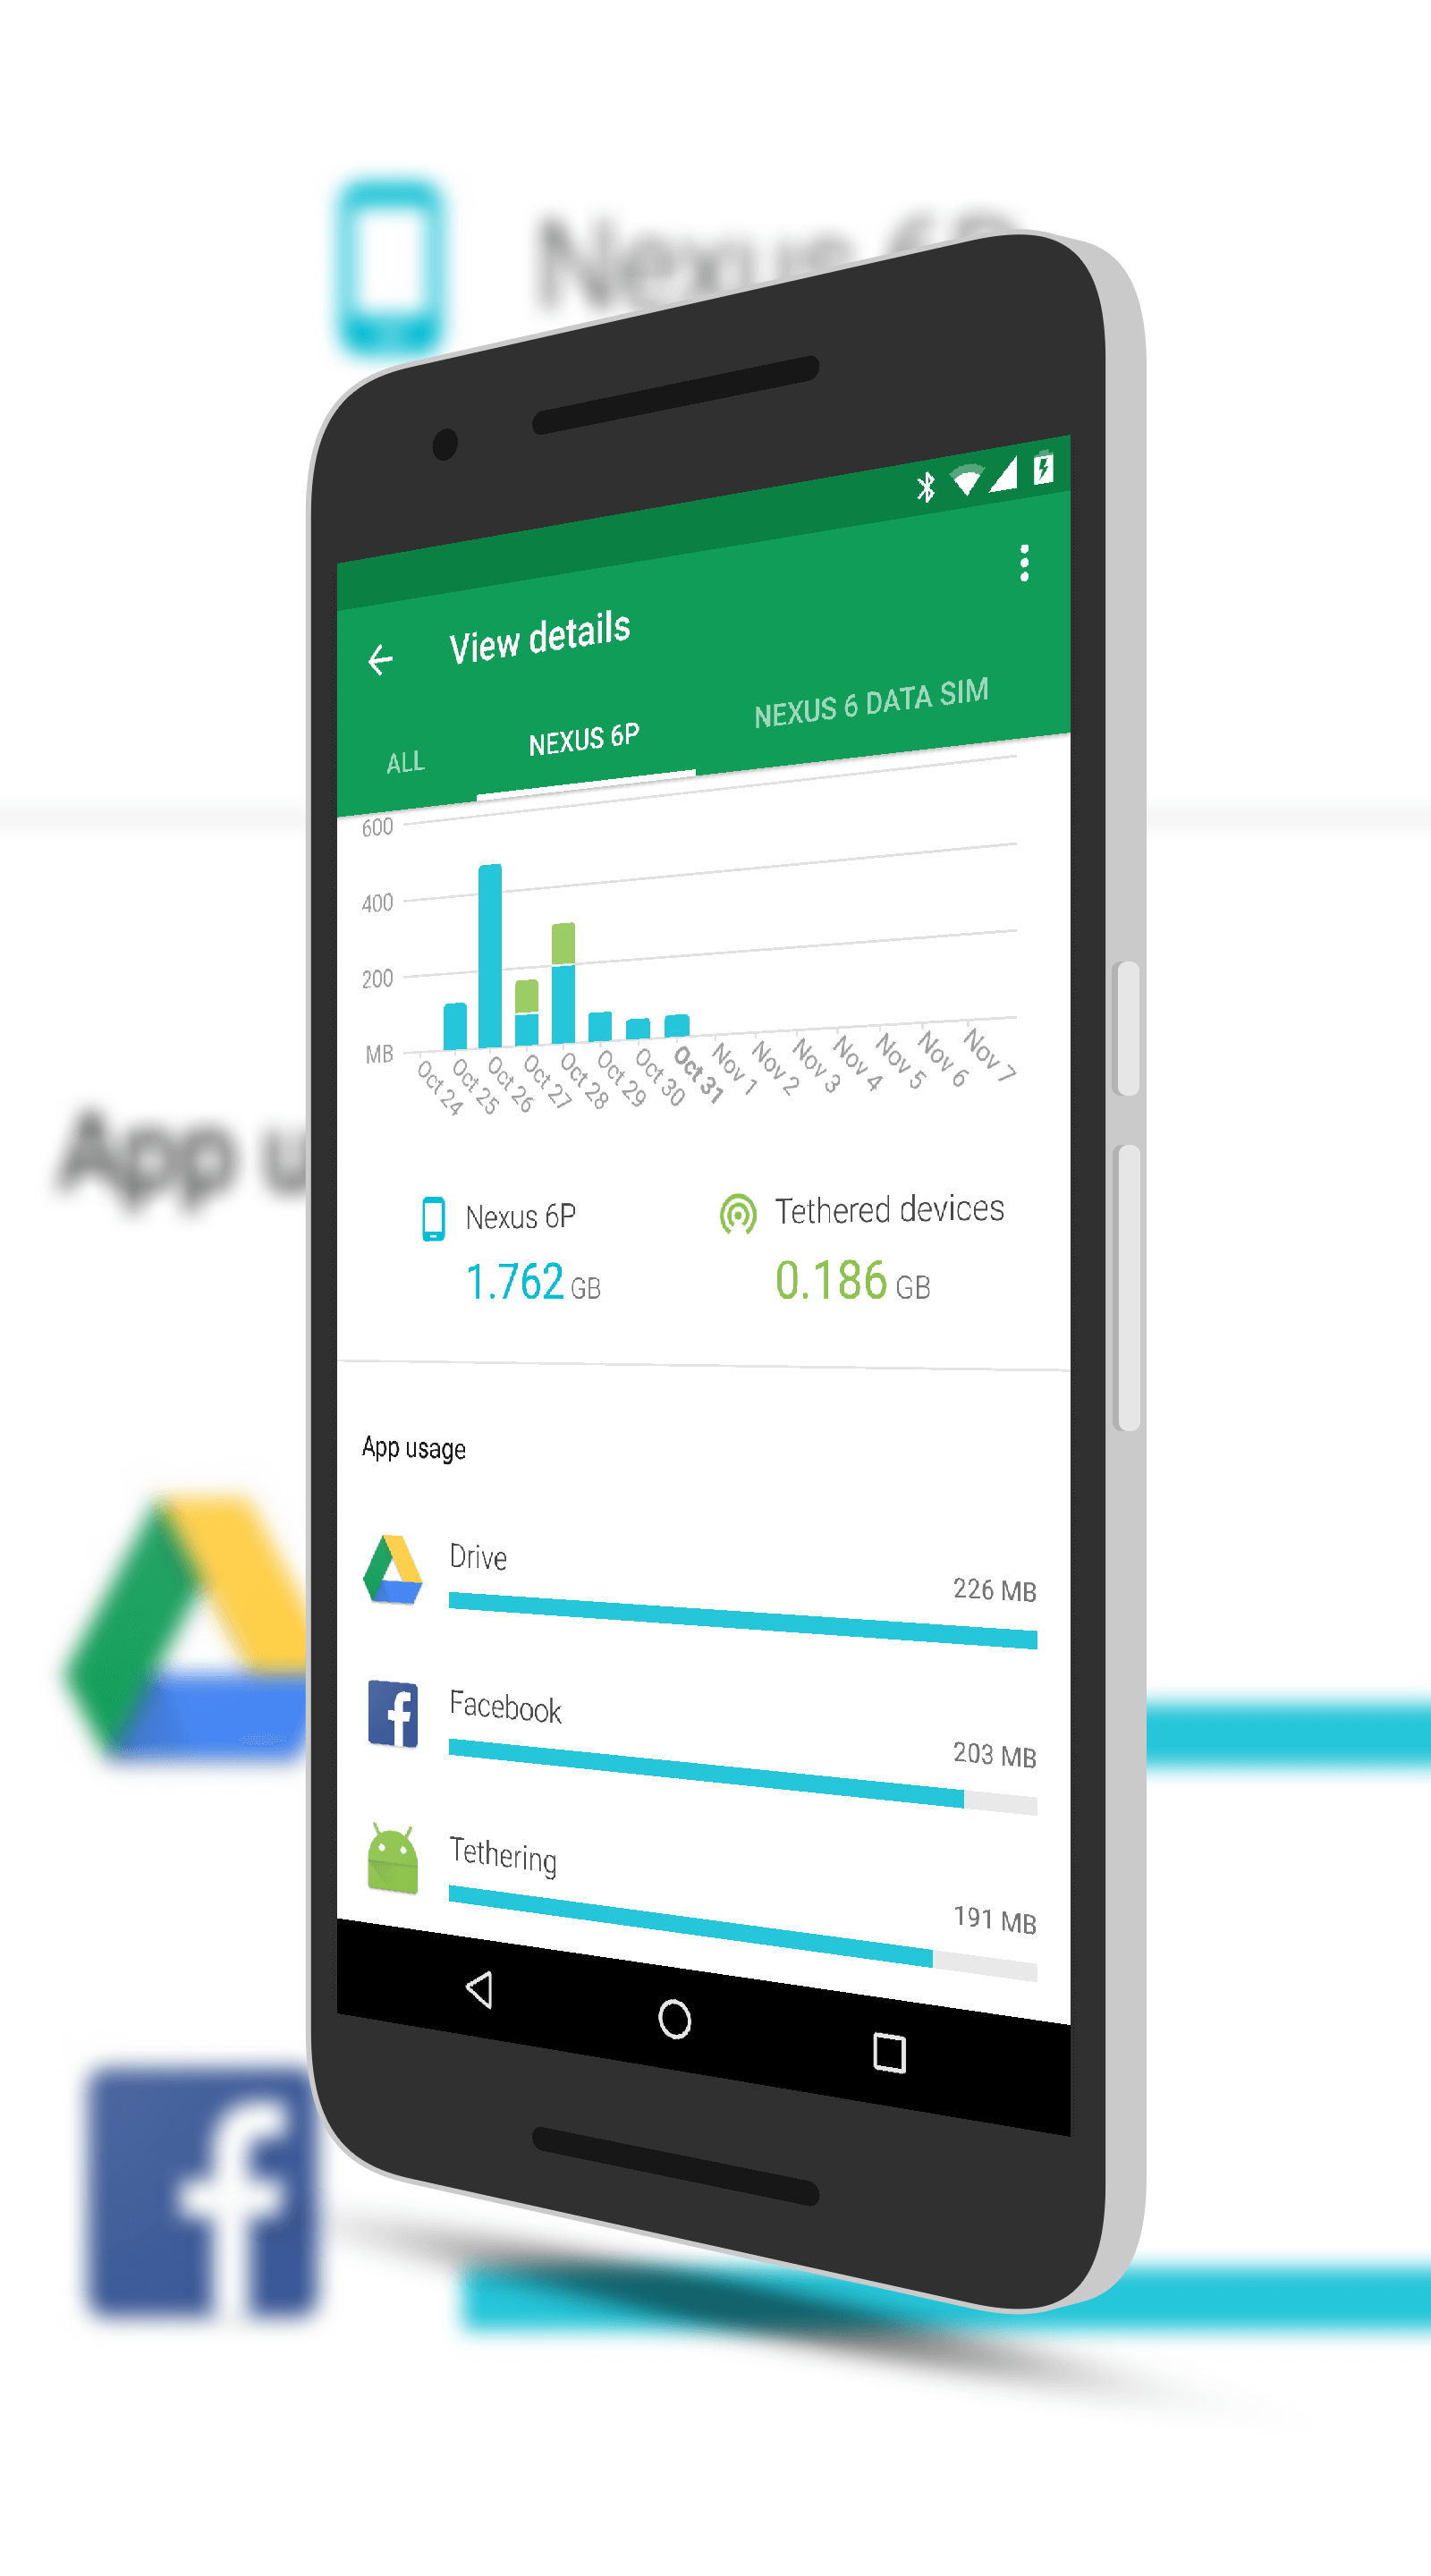 Project Fi Per App Data Usage